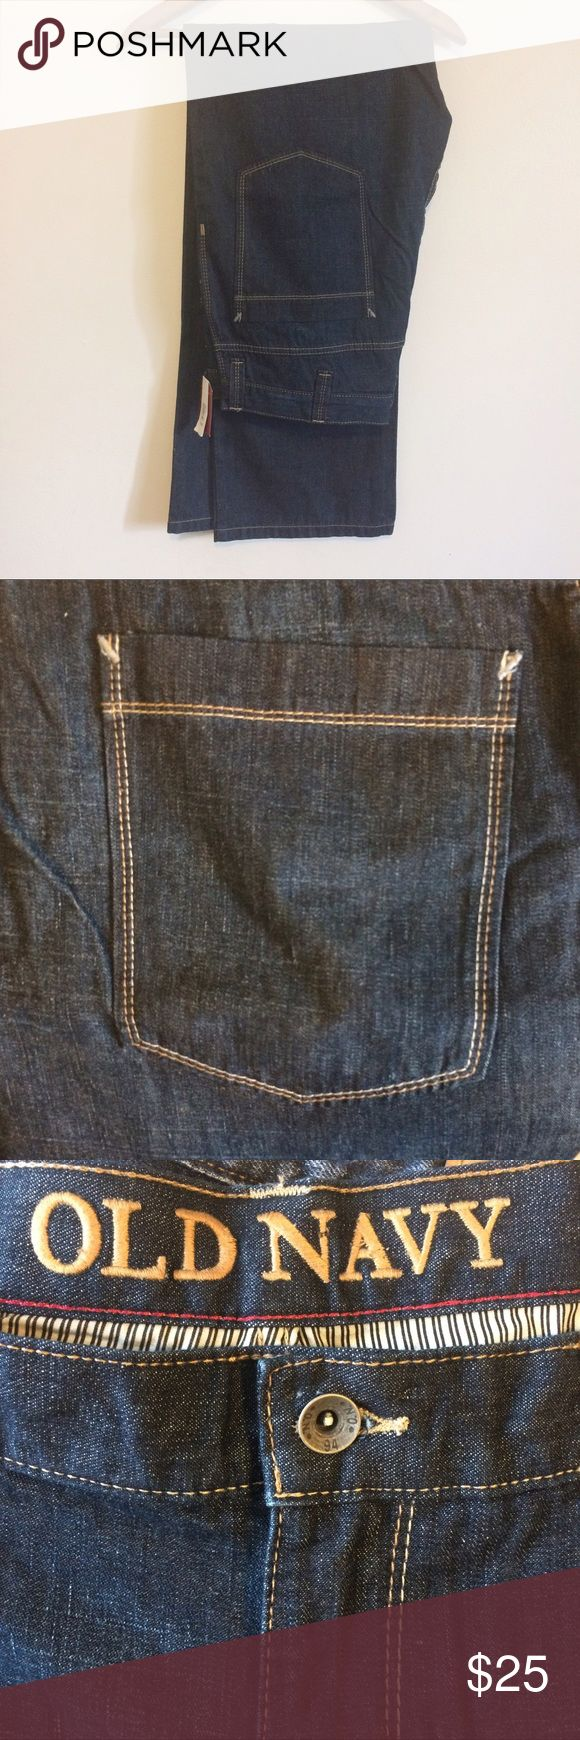 NWT Old Navy Men's Bootcut Jeans 36/34 New with tags nice thick jeans! There is a mark on the inside tag, most likely from the store itself - not visible on the outside! O1 B1 Old Navy Jeans Bootcut